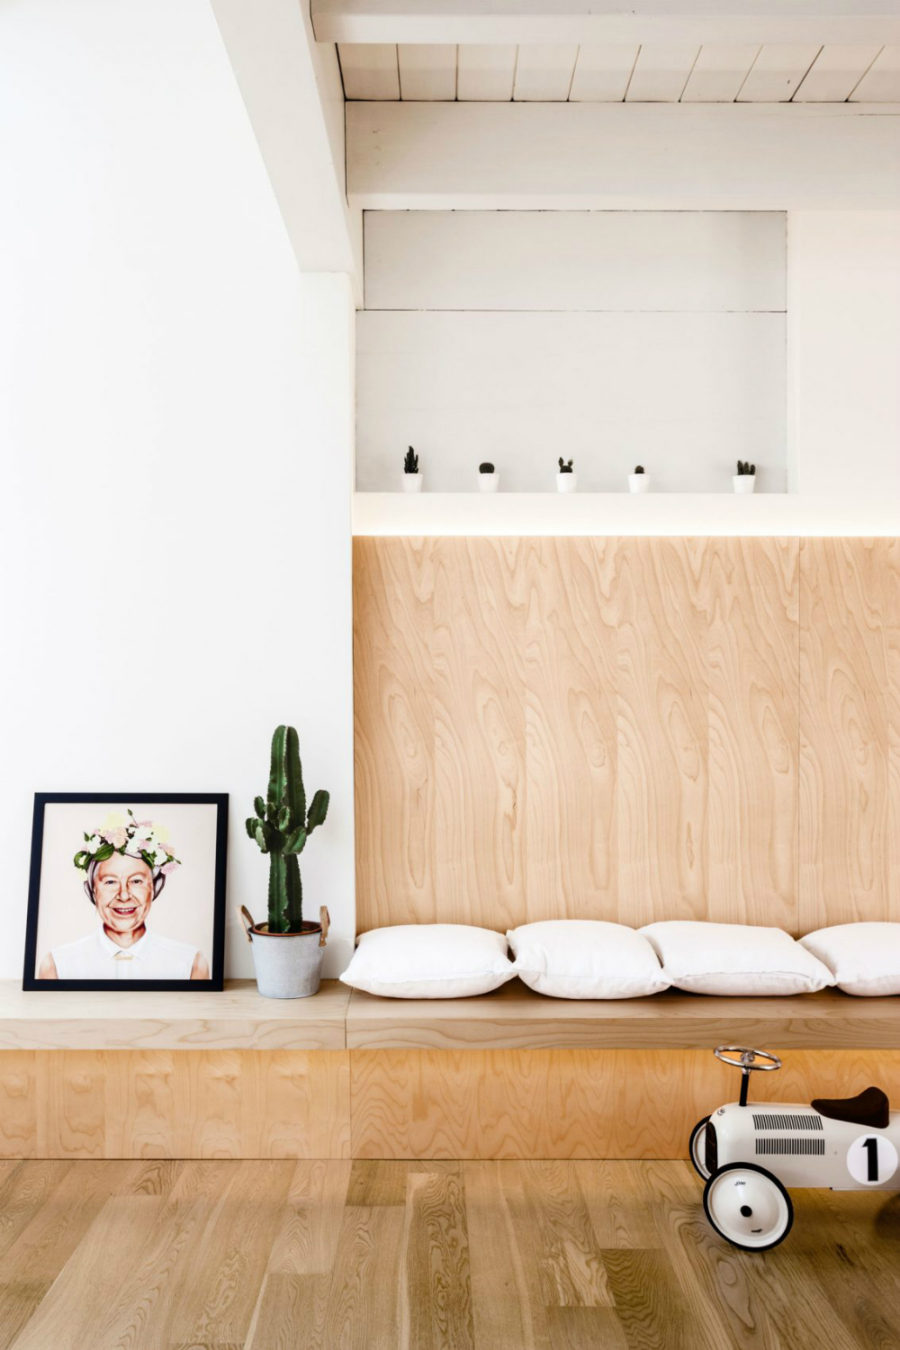 Built-in wall bench